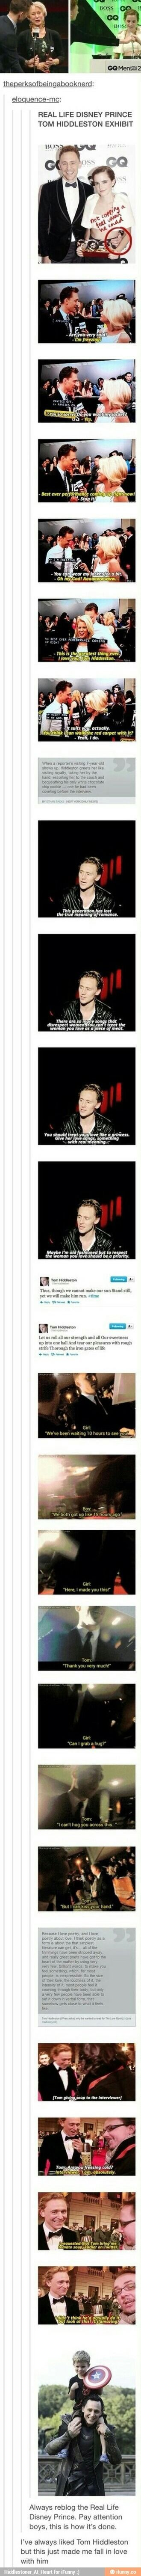 Everyone should learn from Tom on these kinds of things